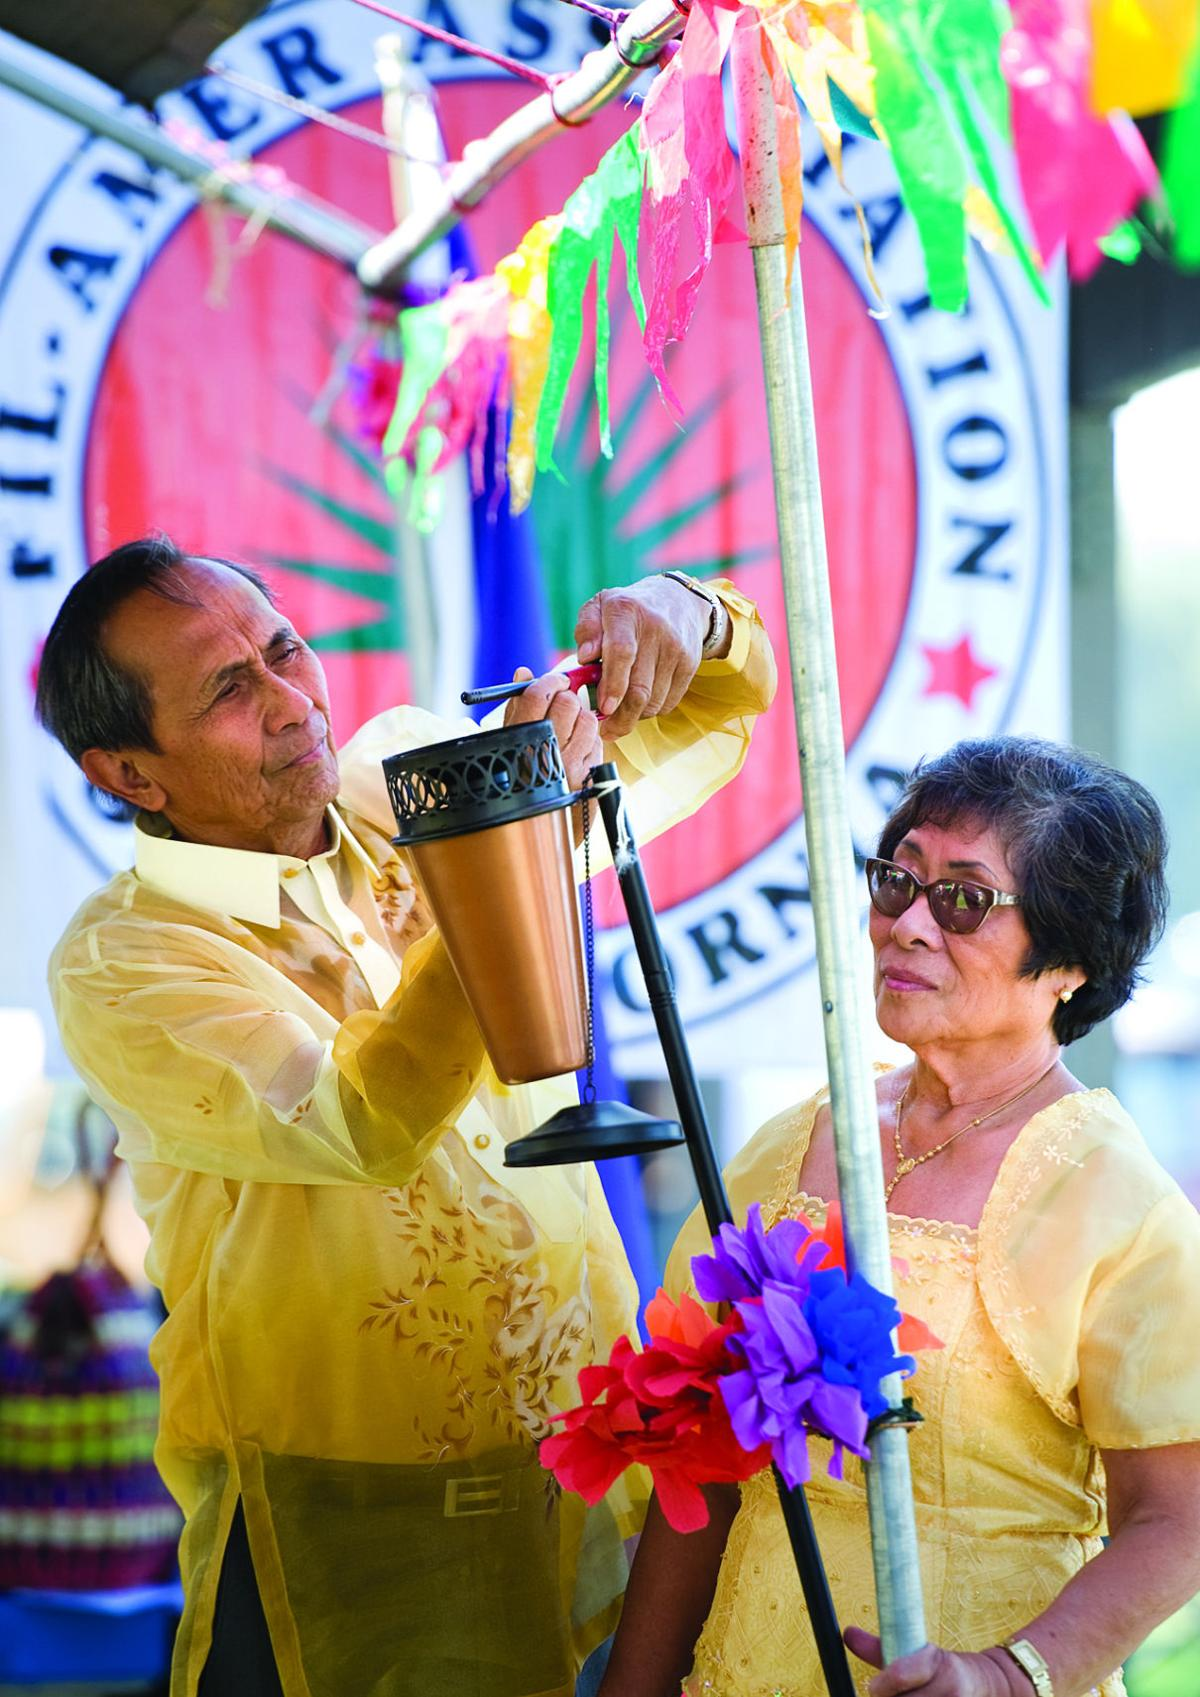 Filipino festival filled with color, music, heritage and